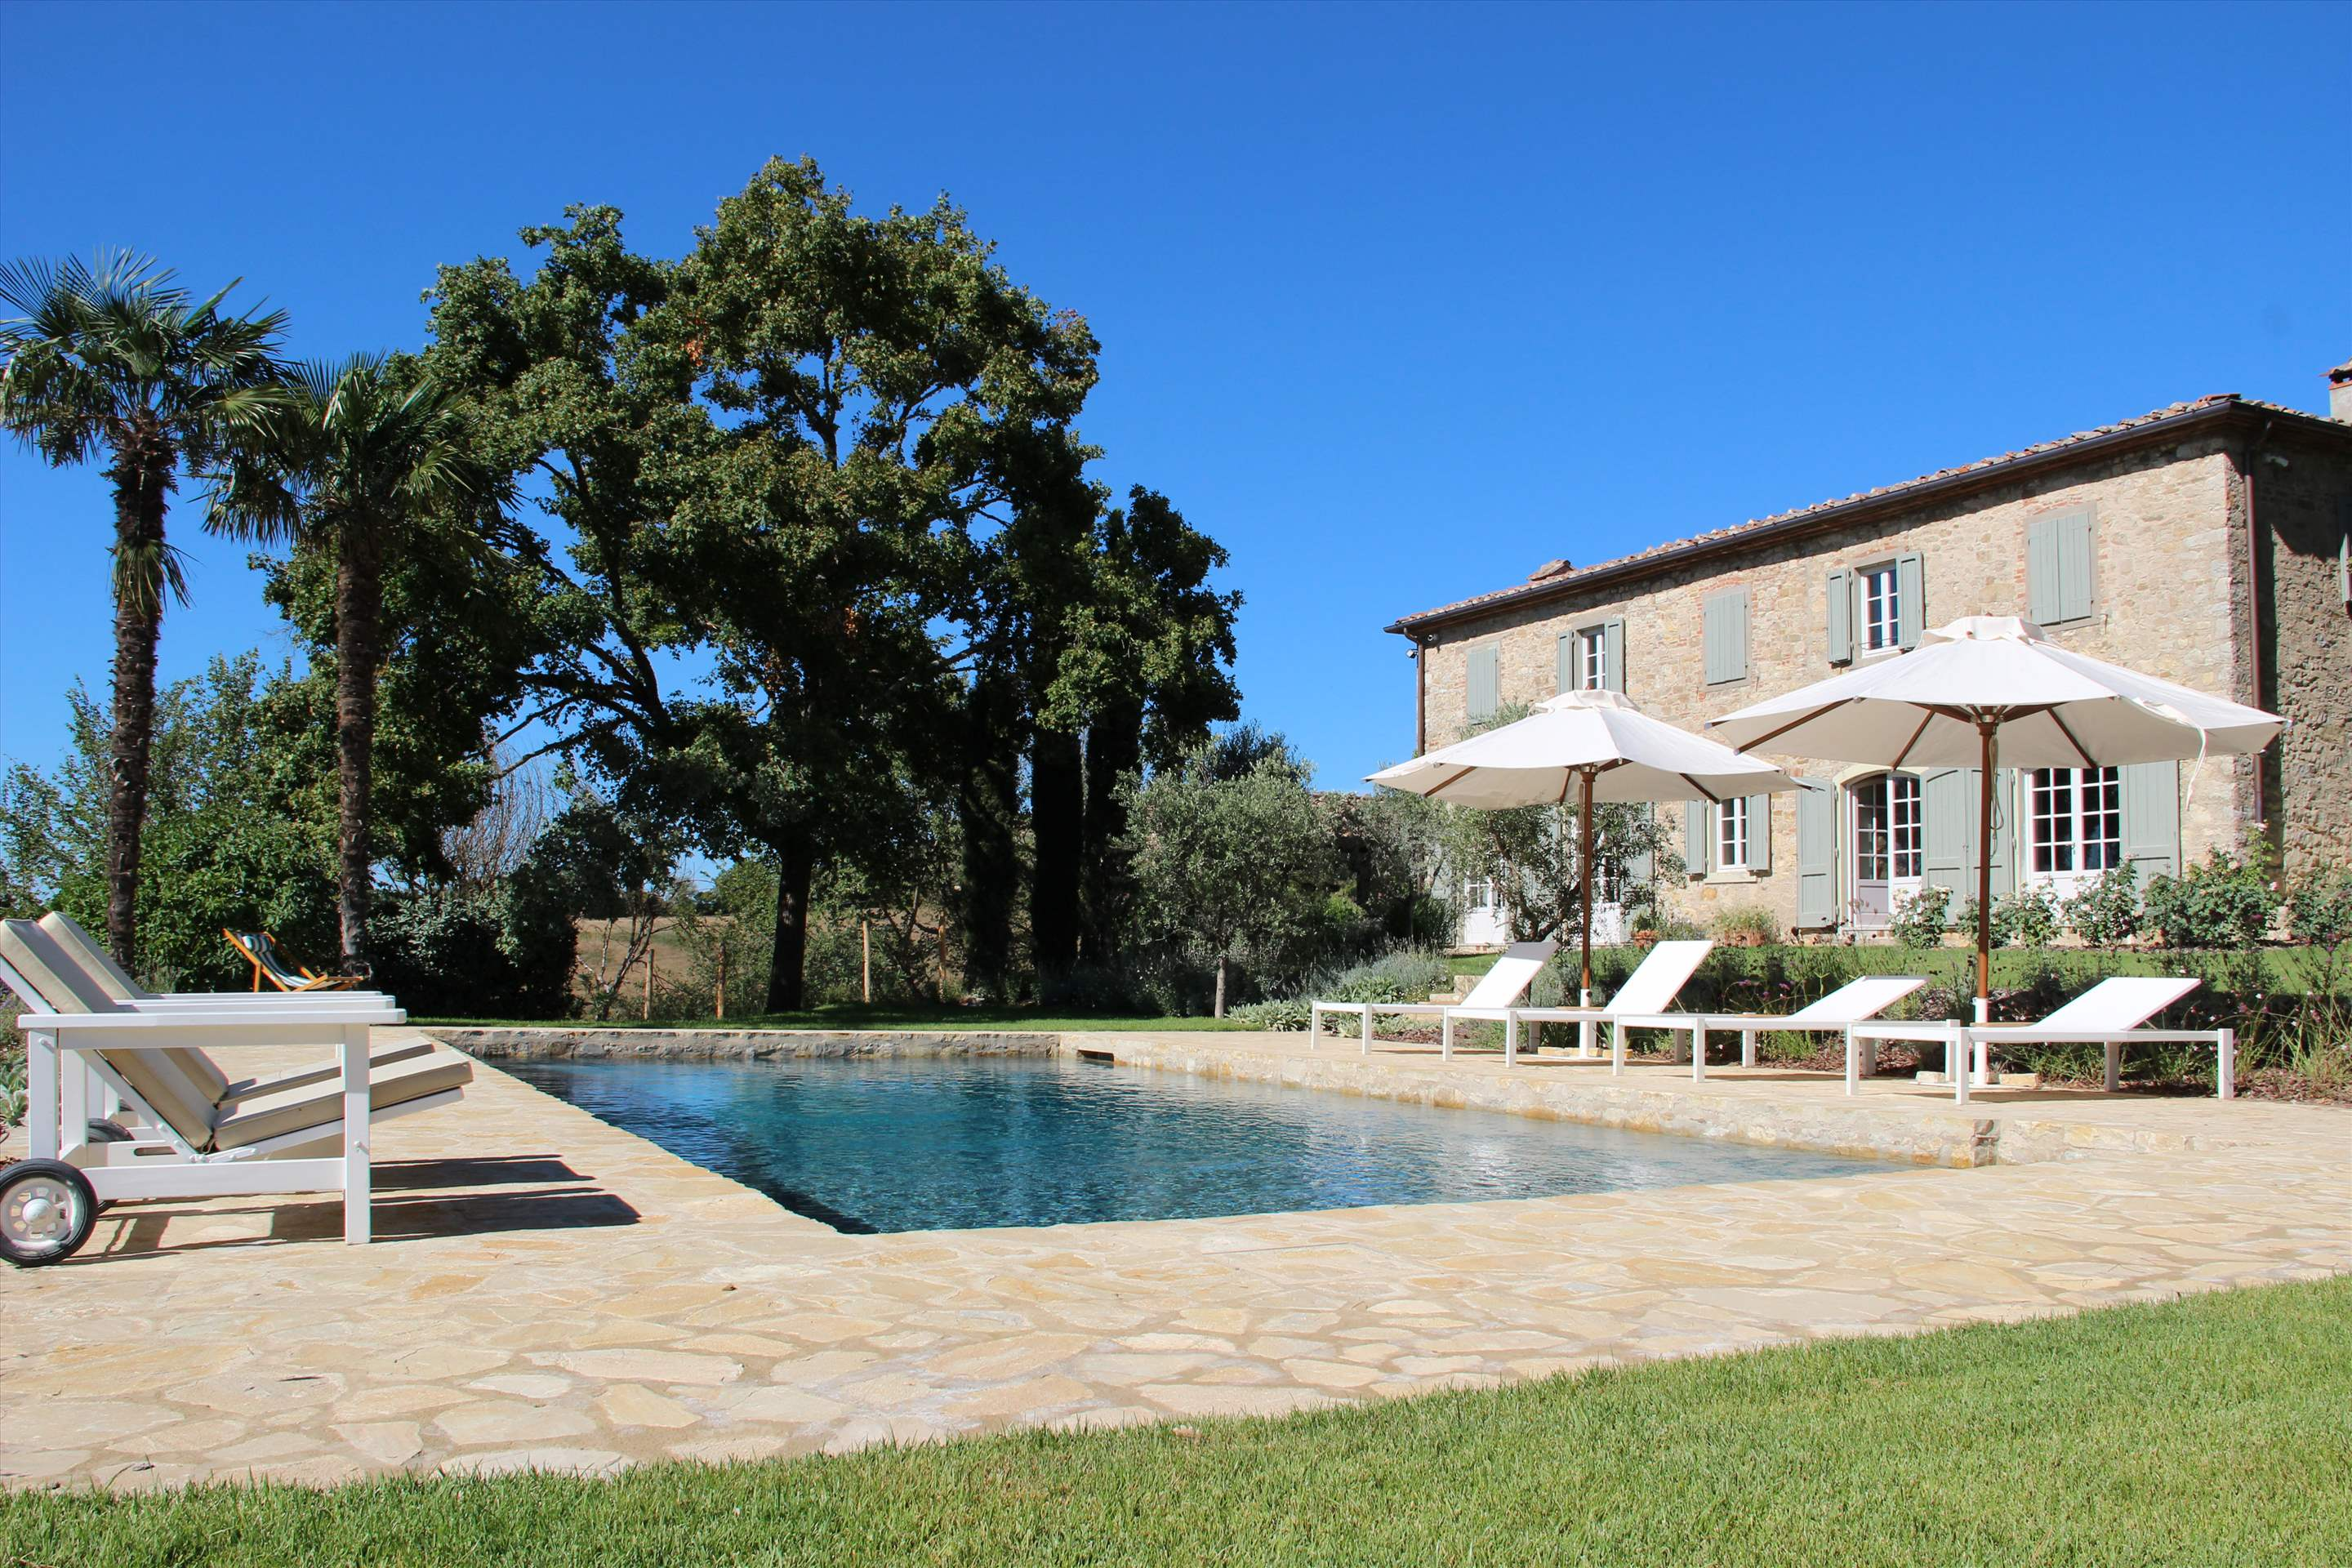 Villa Lecchi, 5 bedroom villa in Chianti & Countryside, Tuscany Photo #1